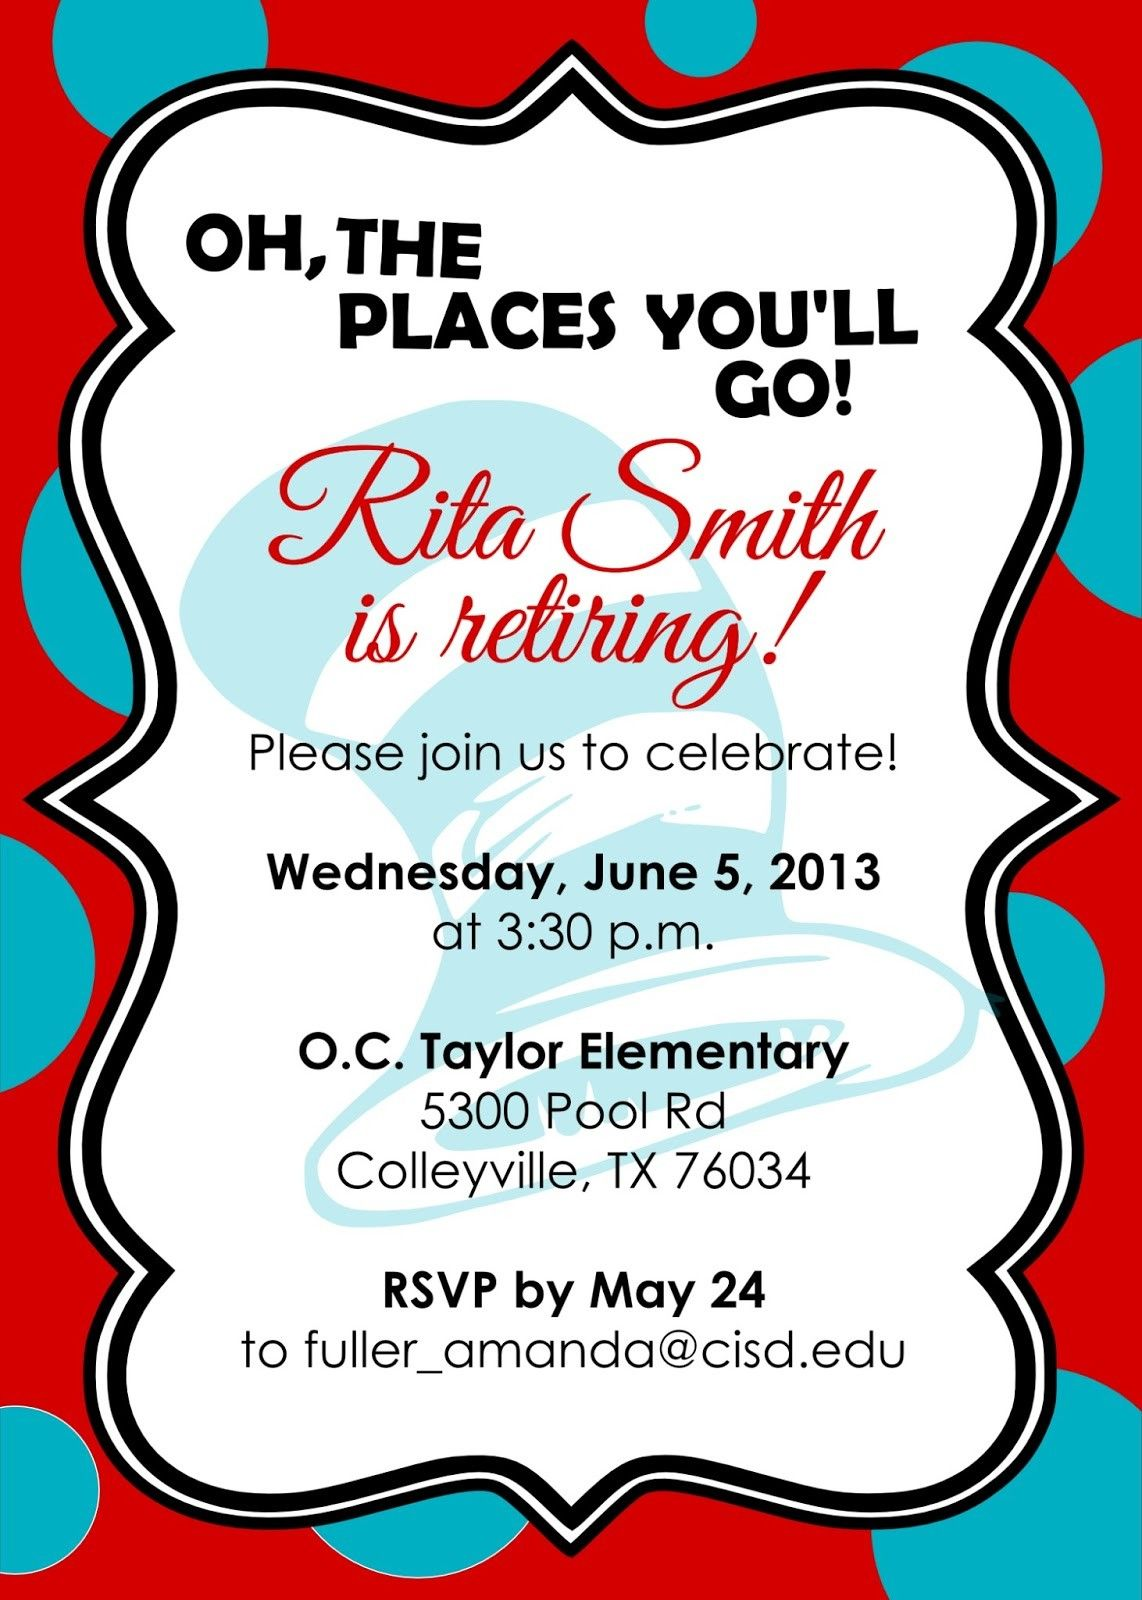 Retirement Party Invitations Free Templates | Fun stuff | Pinterest ...